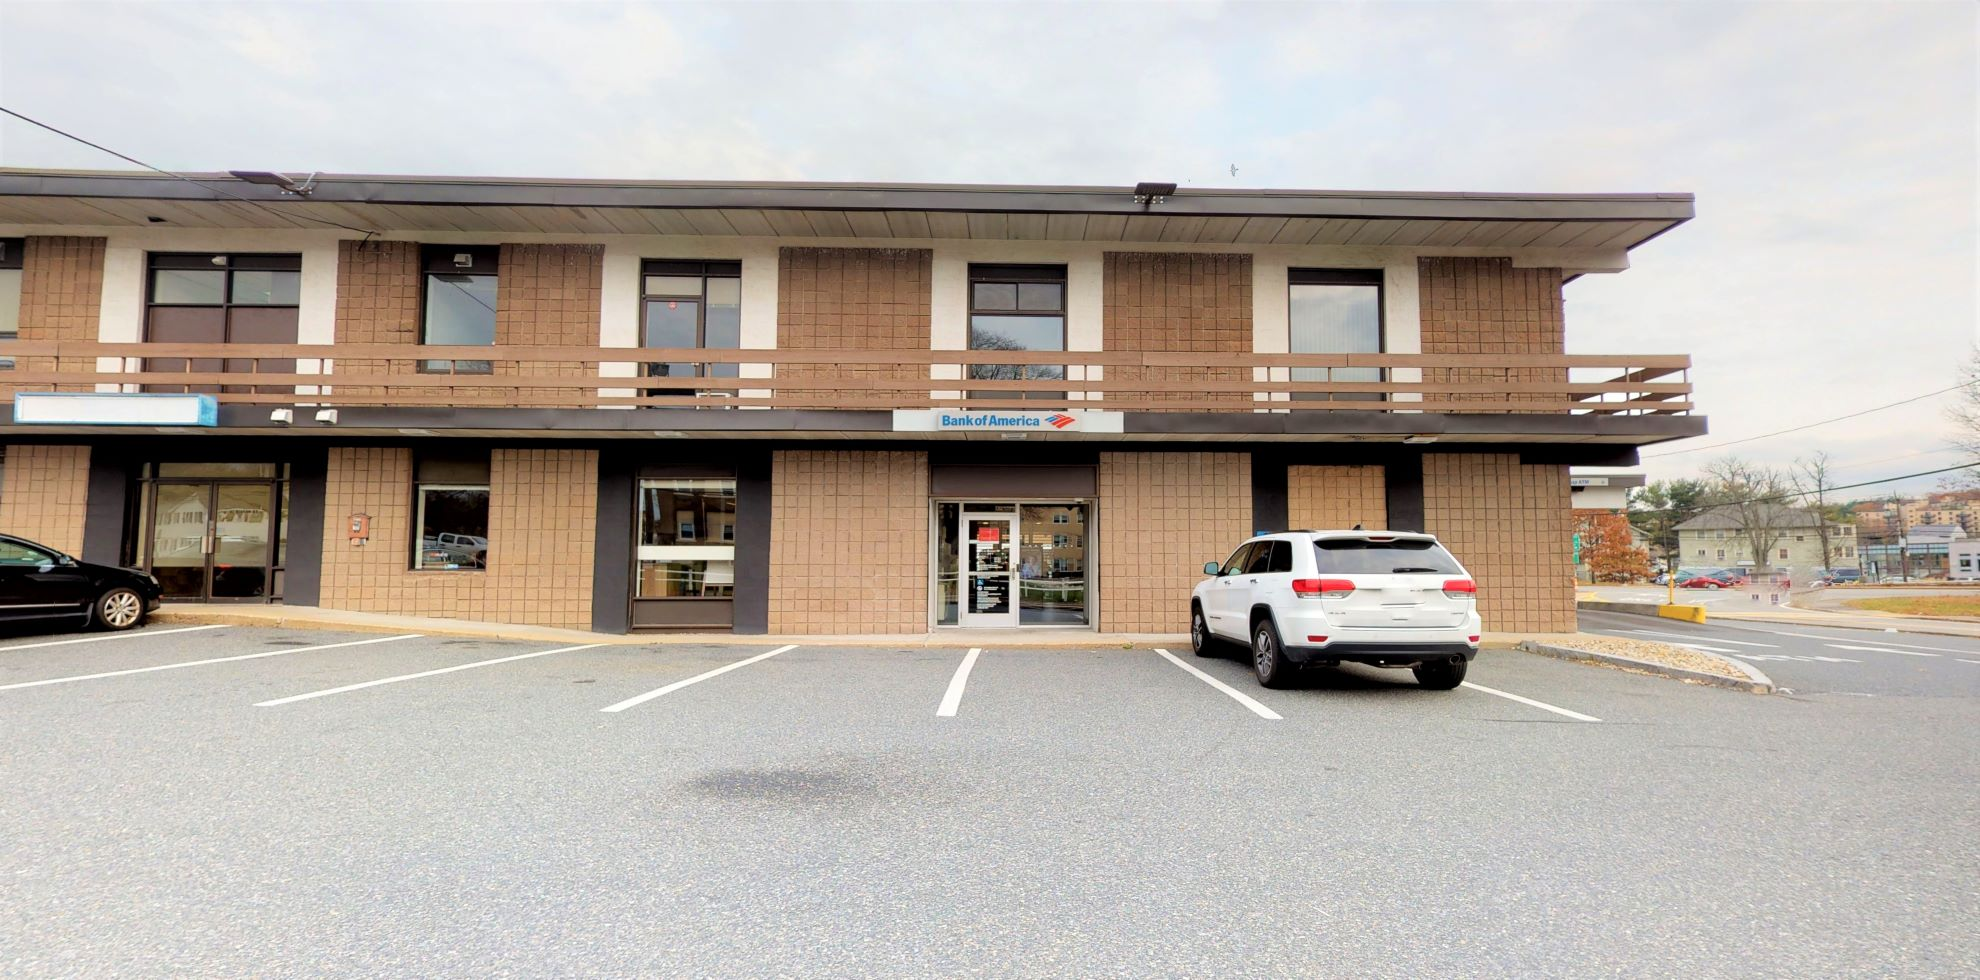 Bank of America financial center with drive-thru ATM | 41 Beacon St, Framingham, MA 01701